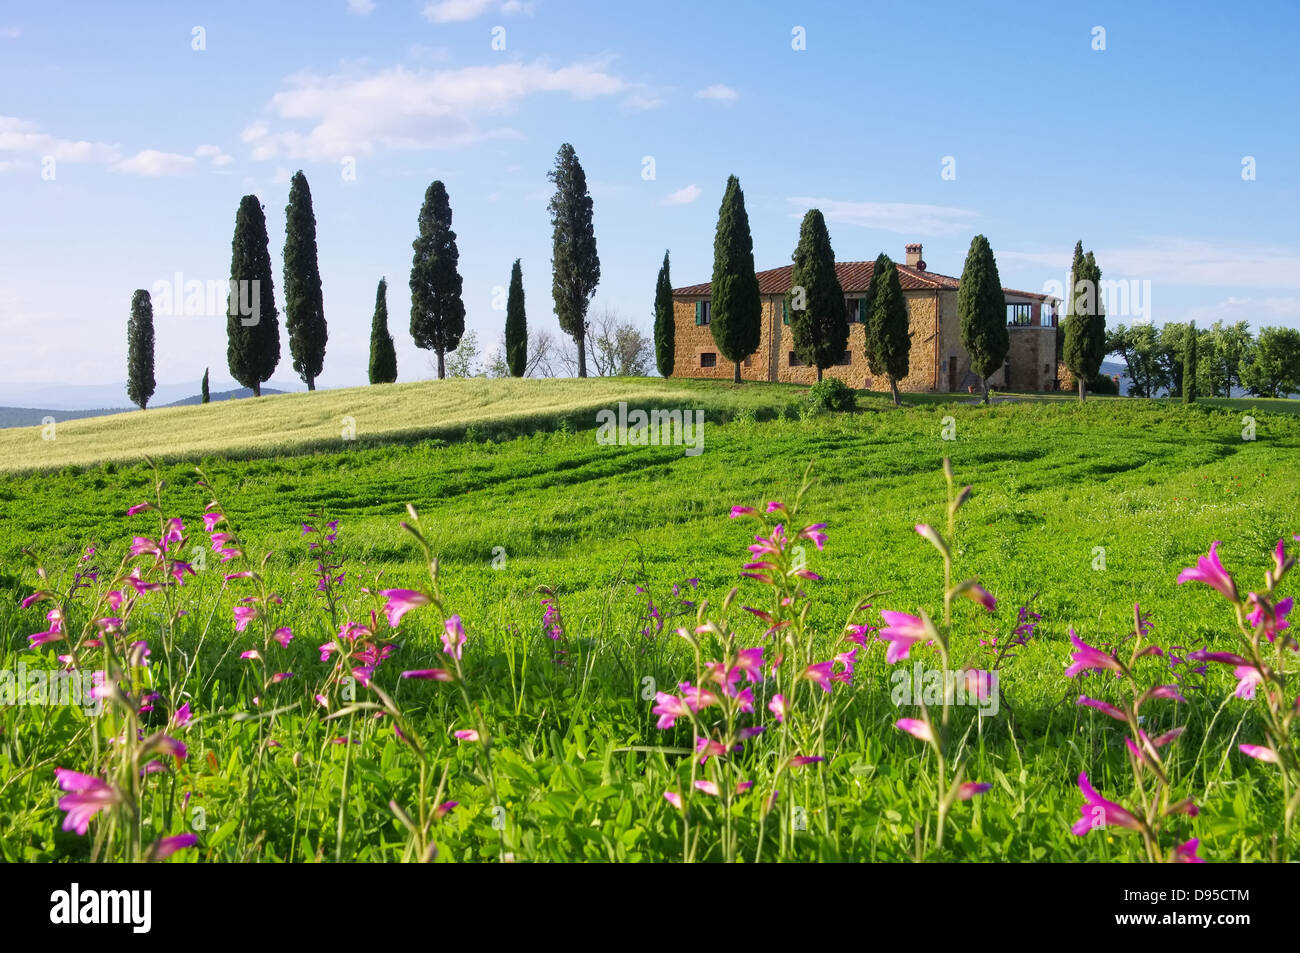 Toskana Haus Mit Blumen   Tuscany House And Flowers 03   Stock Image